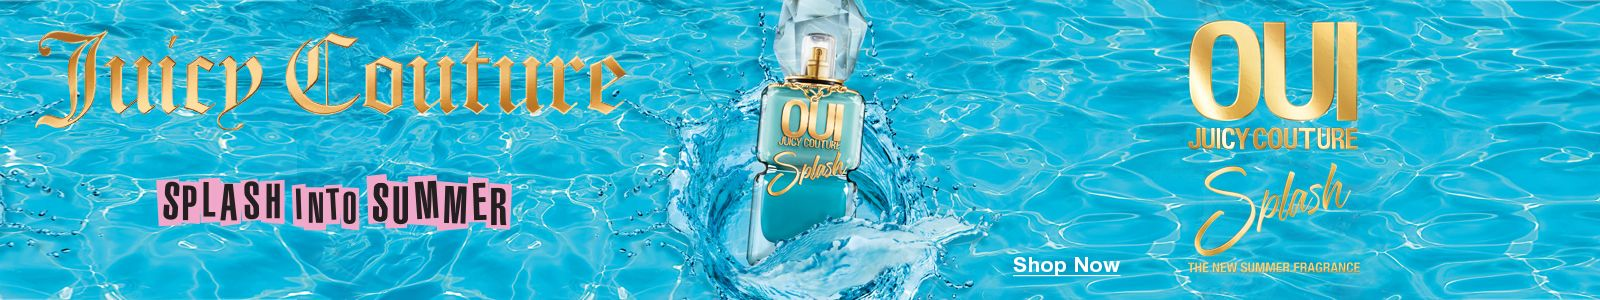 Juicy Couture, Splash Into Summer, Shop Now, OUI Juicy Couture, Splash, The New Summer Fragrance